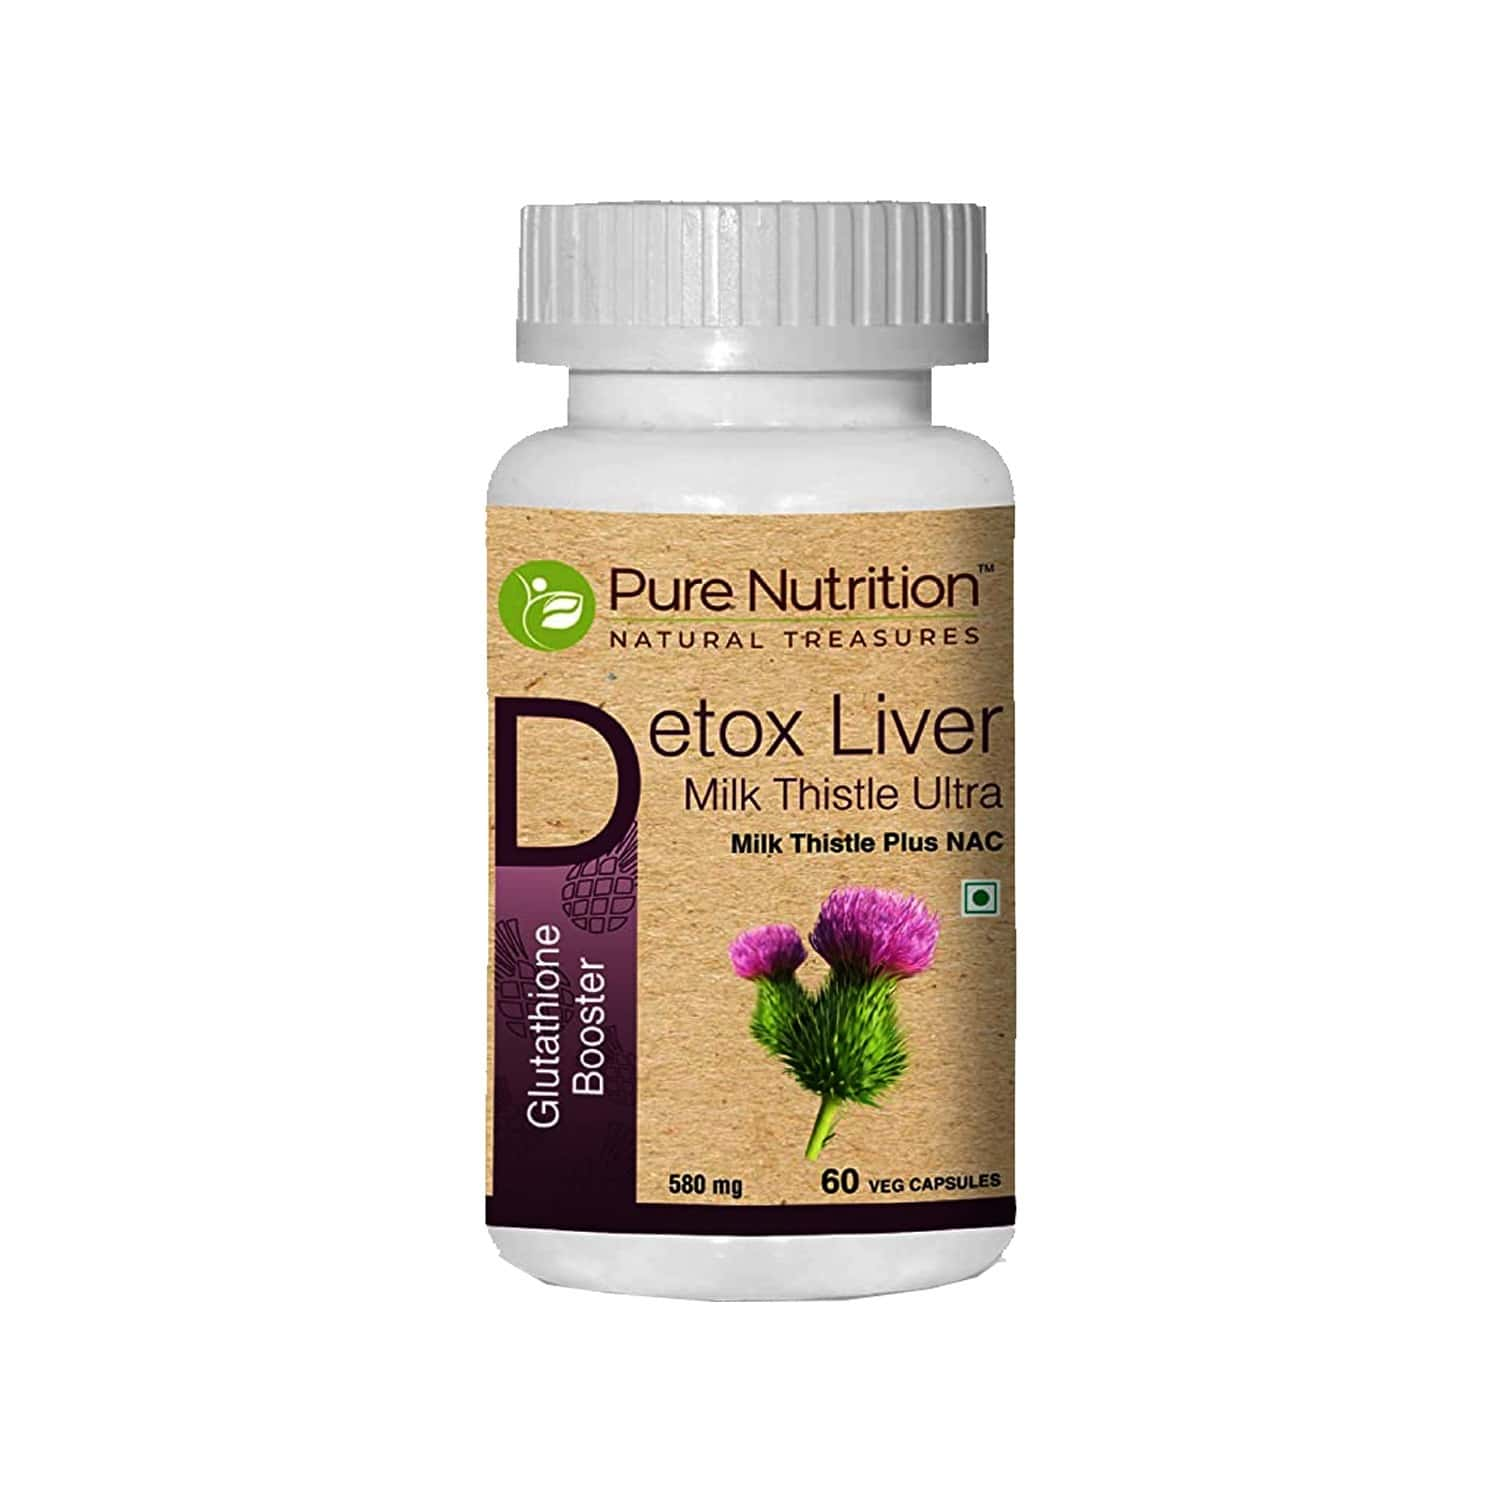 Pure Nutrition Detox Liver Milk Thistle Ultra (glutathione Booster), Support Healthy Liver Function For Men And Women, With Milk Thistle (250mg), Nac (150mg) & Vitamin C - 60 Veg Capsules